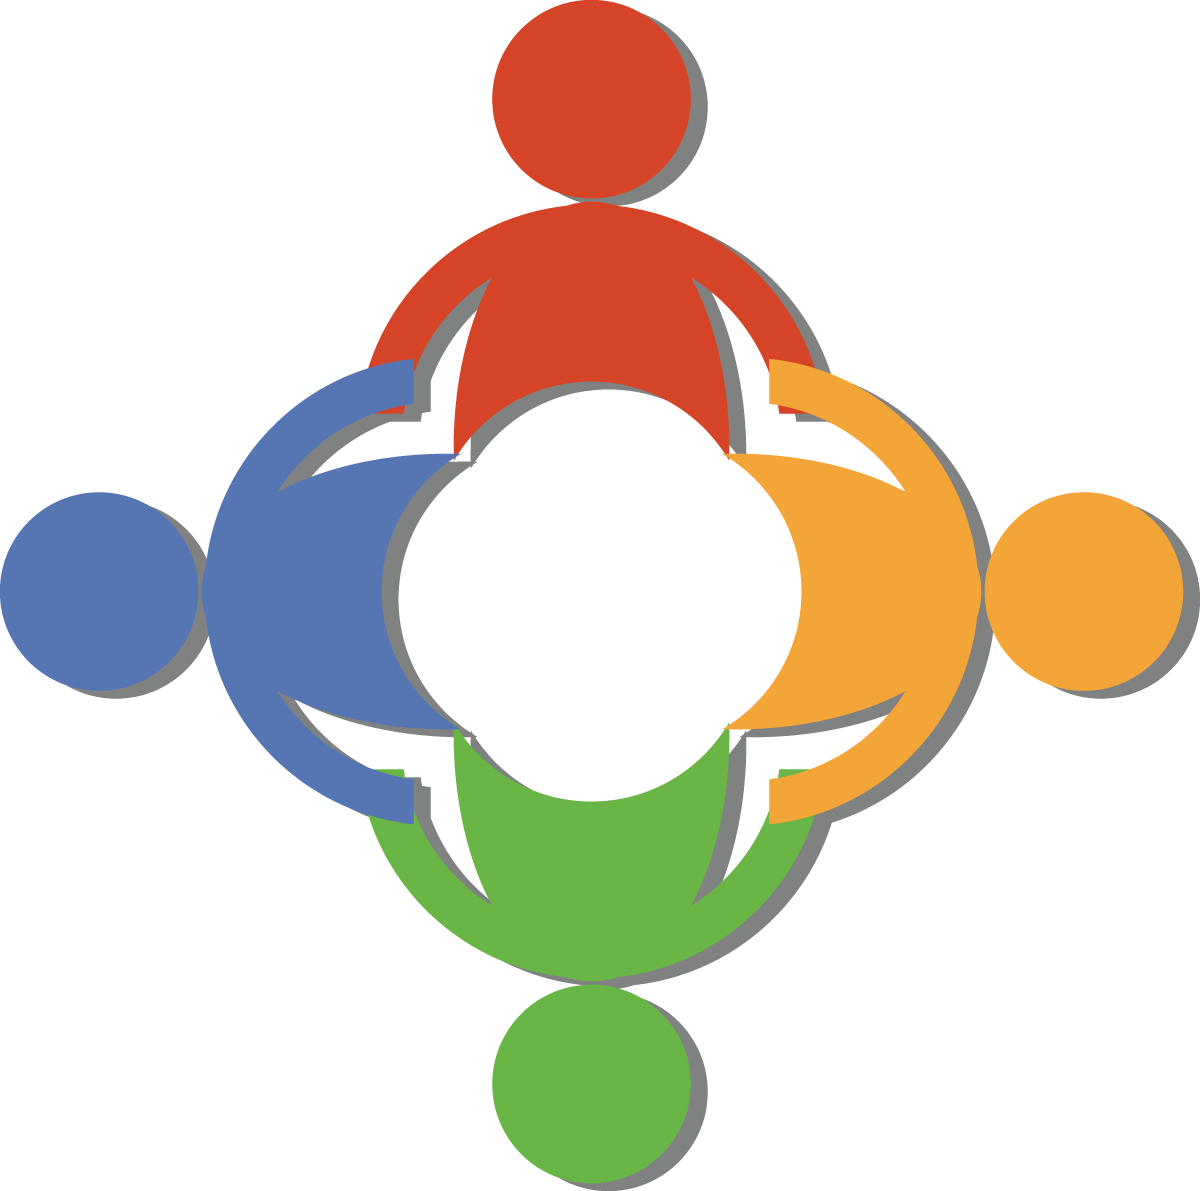 Free Teamwork Clip Art Of A Circle Of Diverse People Holding Hands.